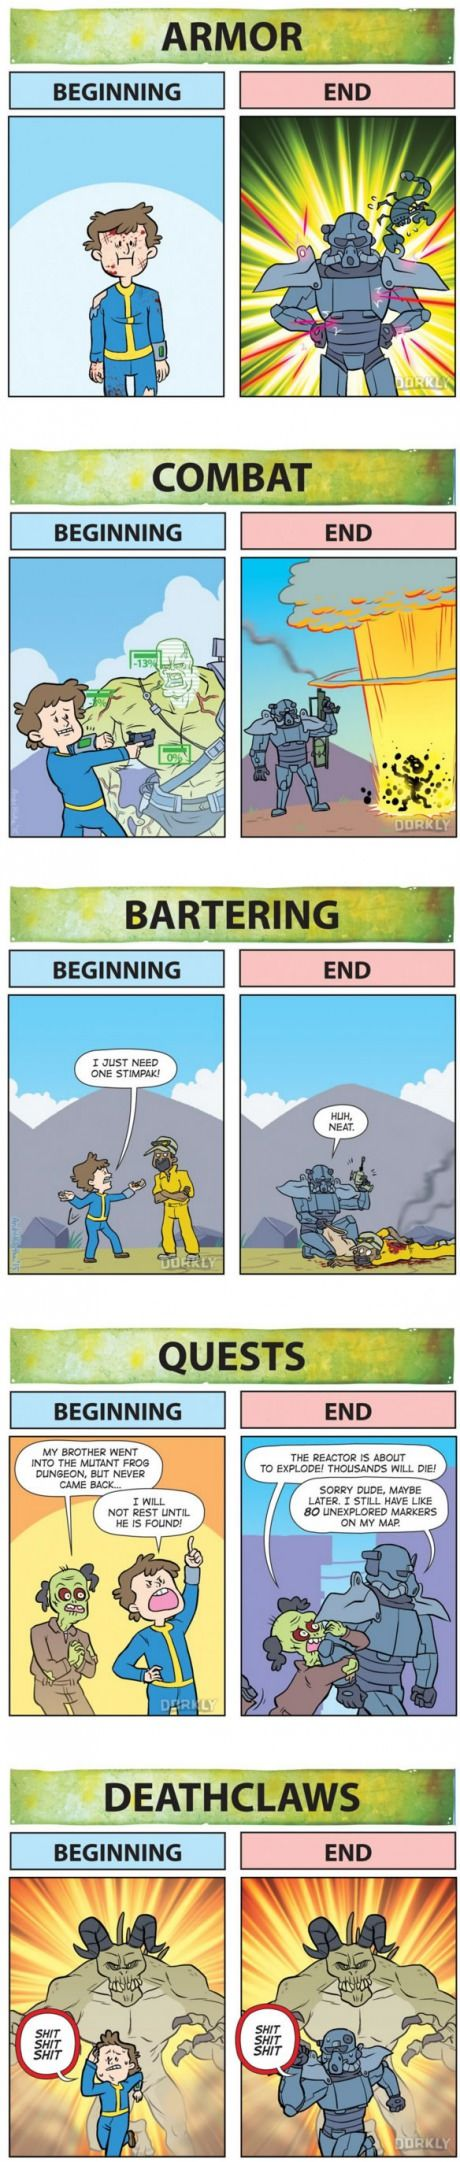 Fallout: Beginning Vs. End